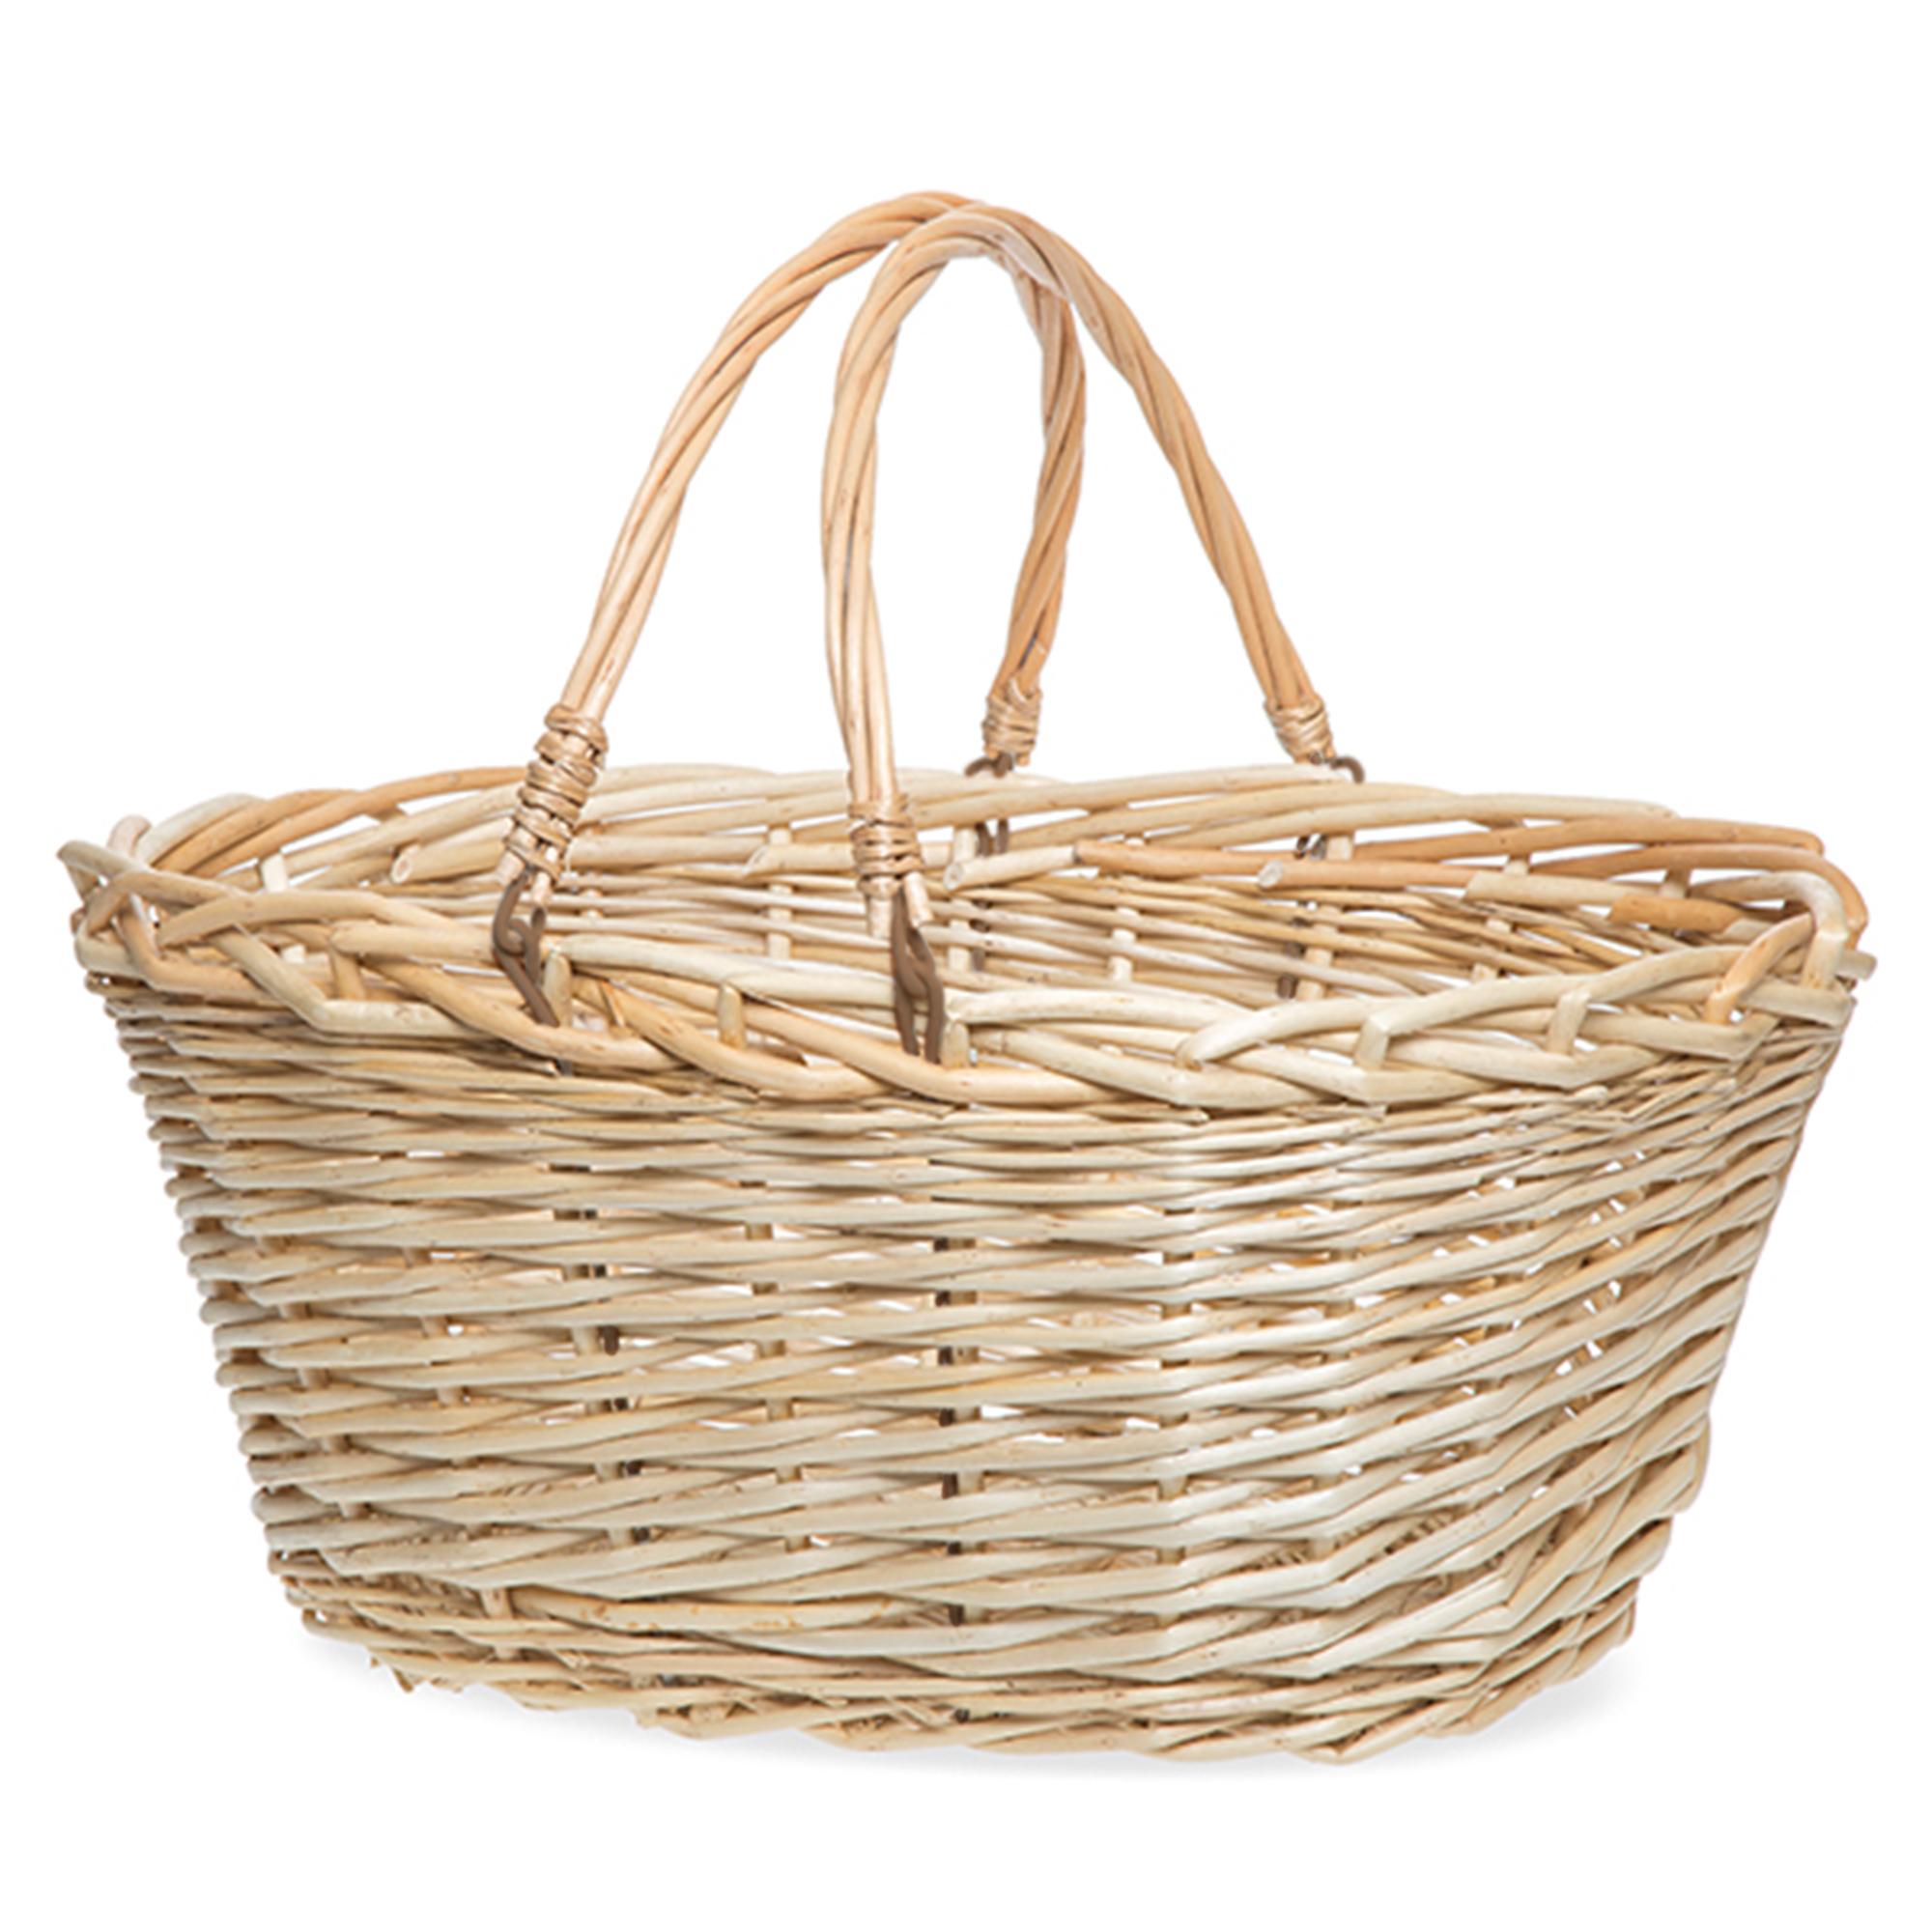 Vintage Willow Swing Handle Shopping Basket 17in